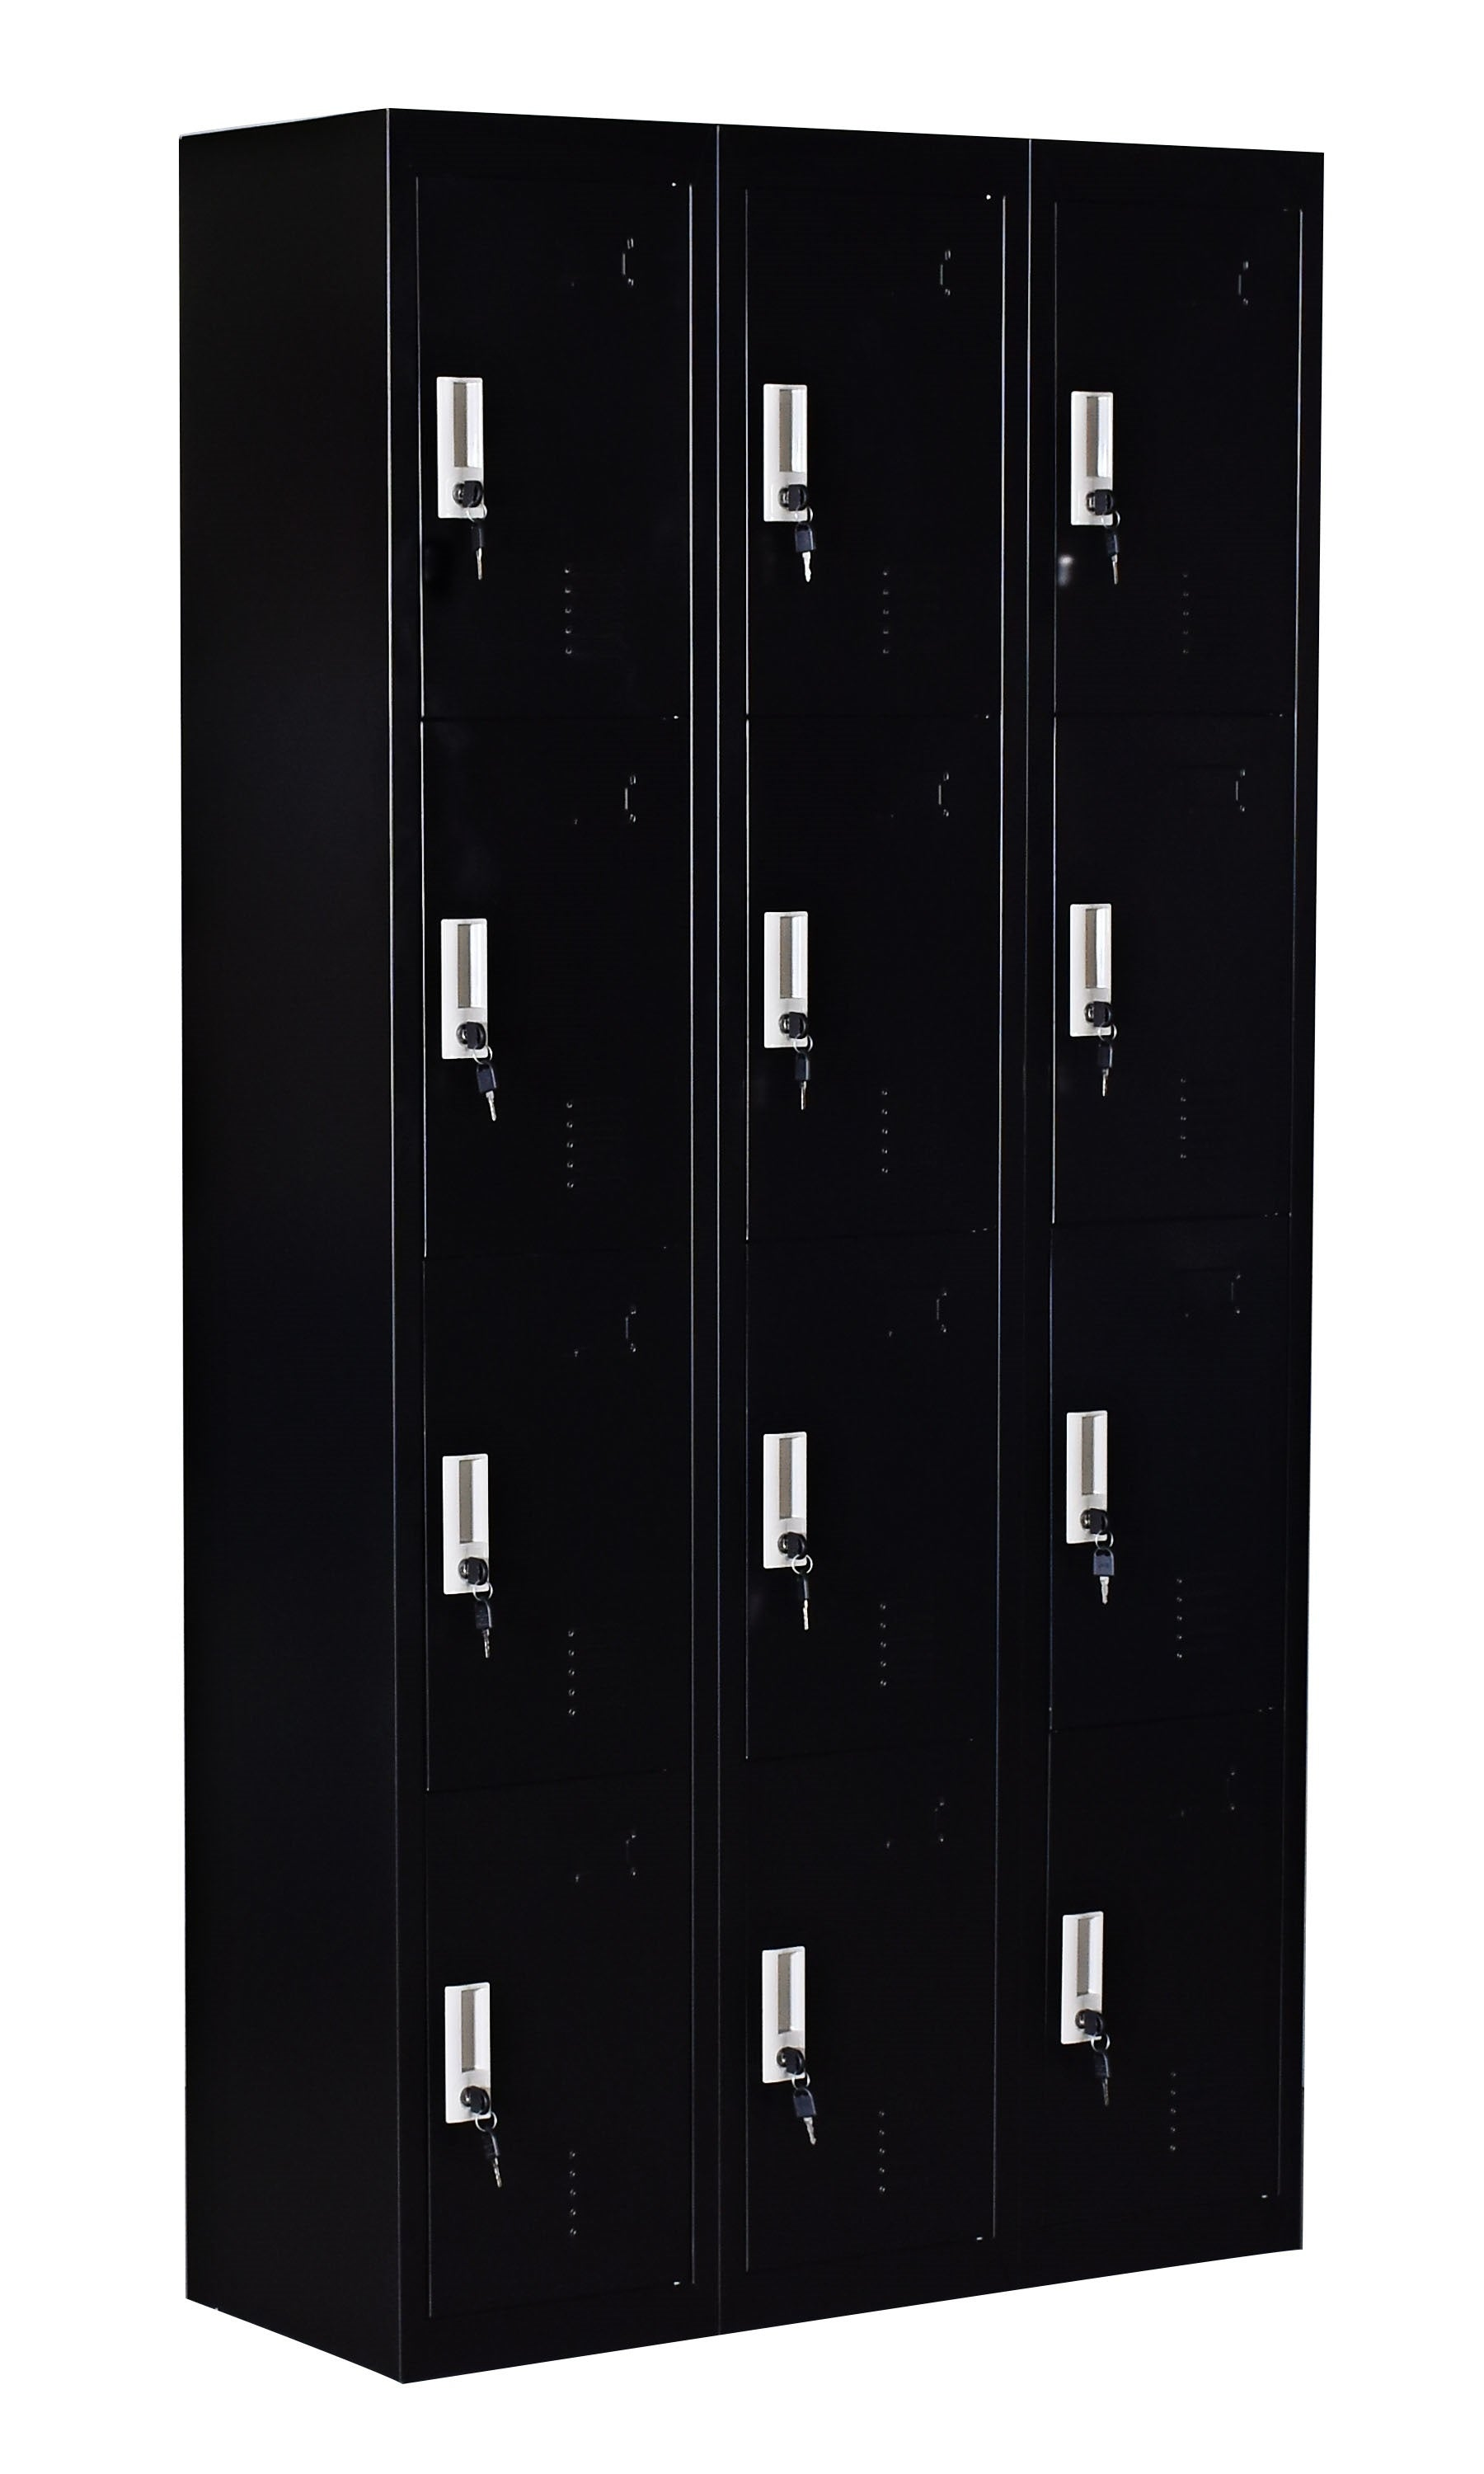 12 Door Locker - Office/Gym - Black